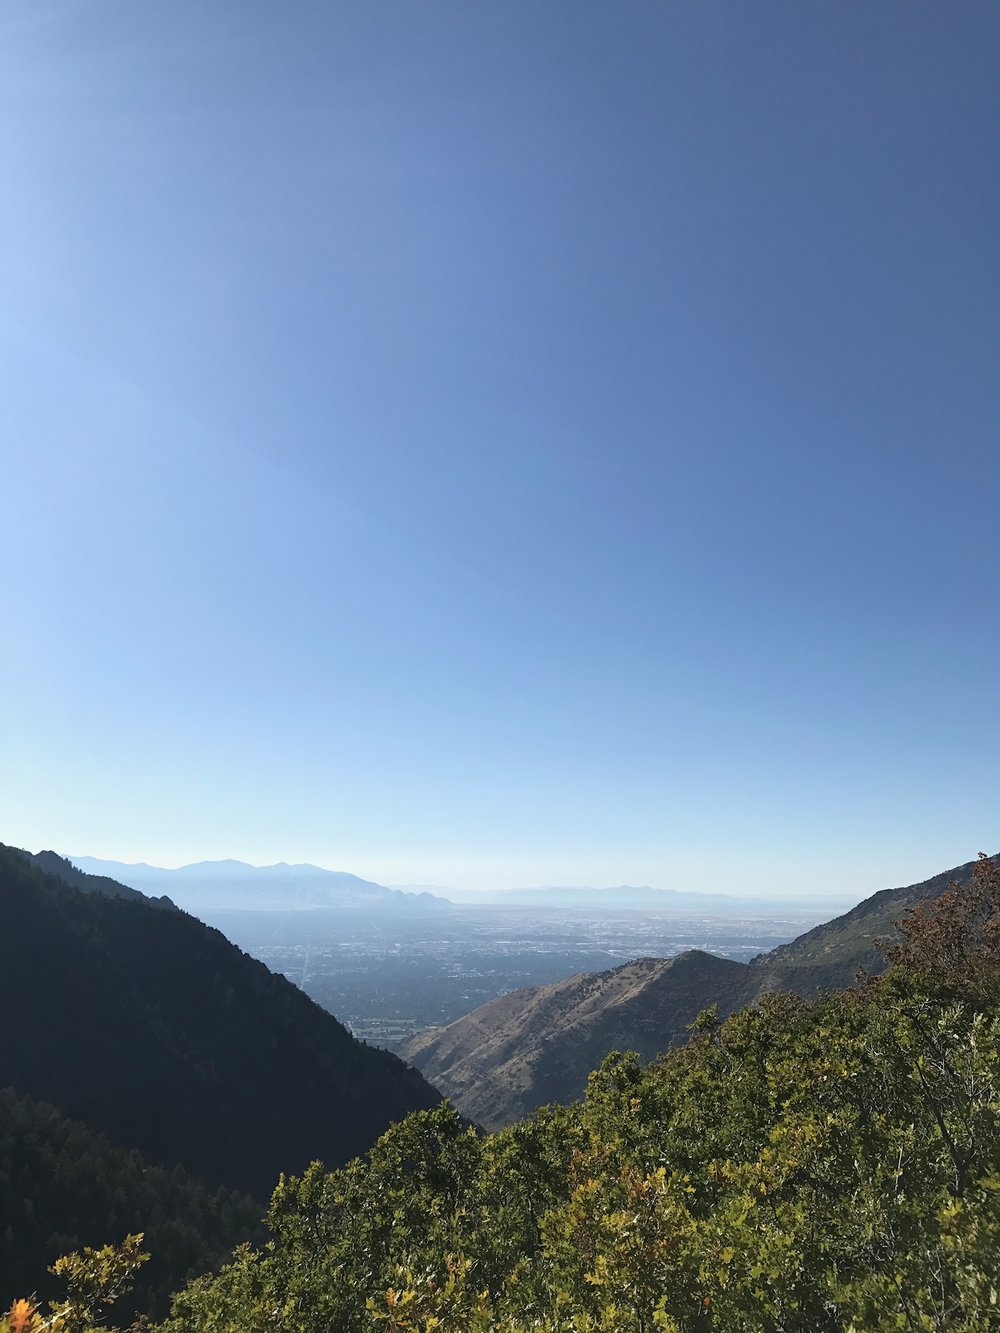 The views from the overlook of Salt Lake City. This was our end point for the day.